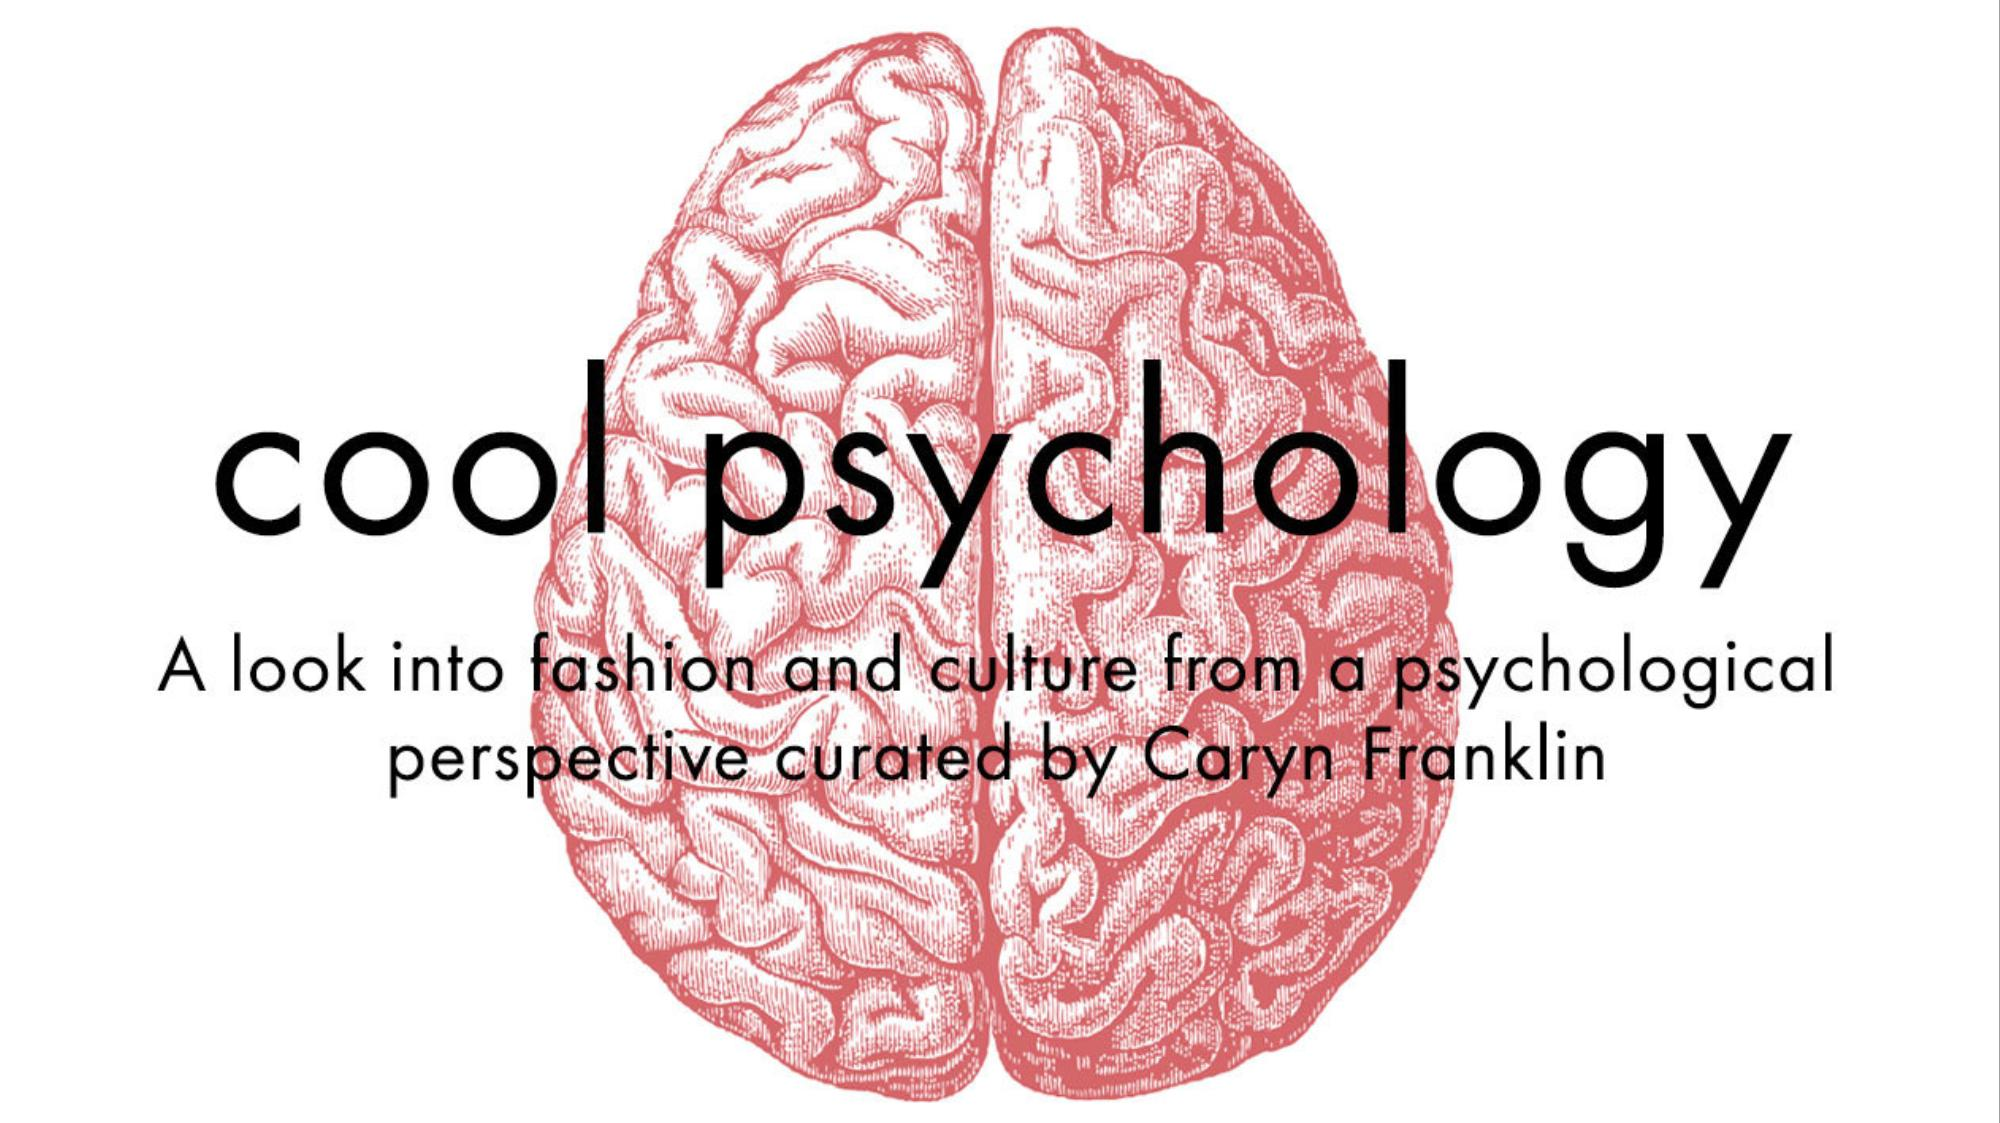 cool psychology: a look into fashion from a psychological perspective